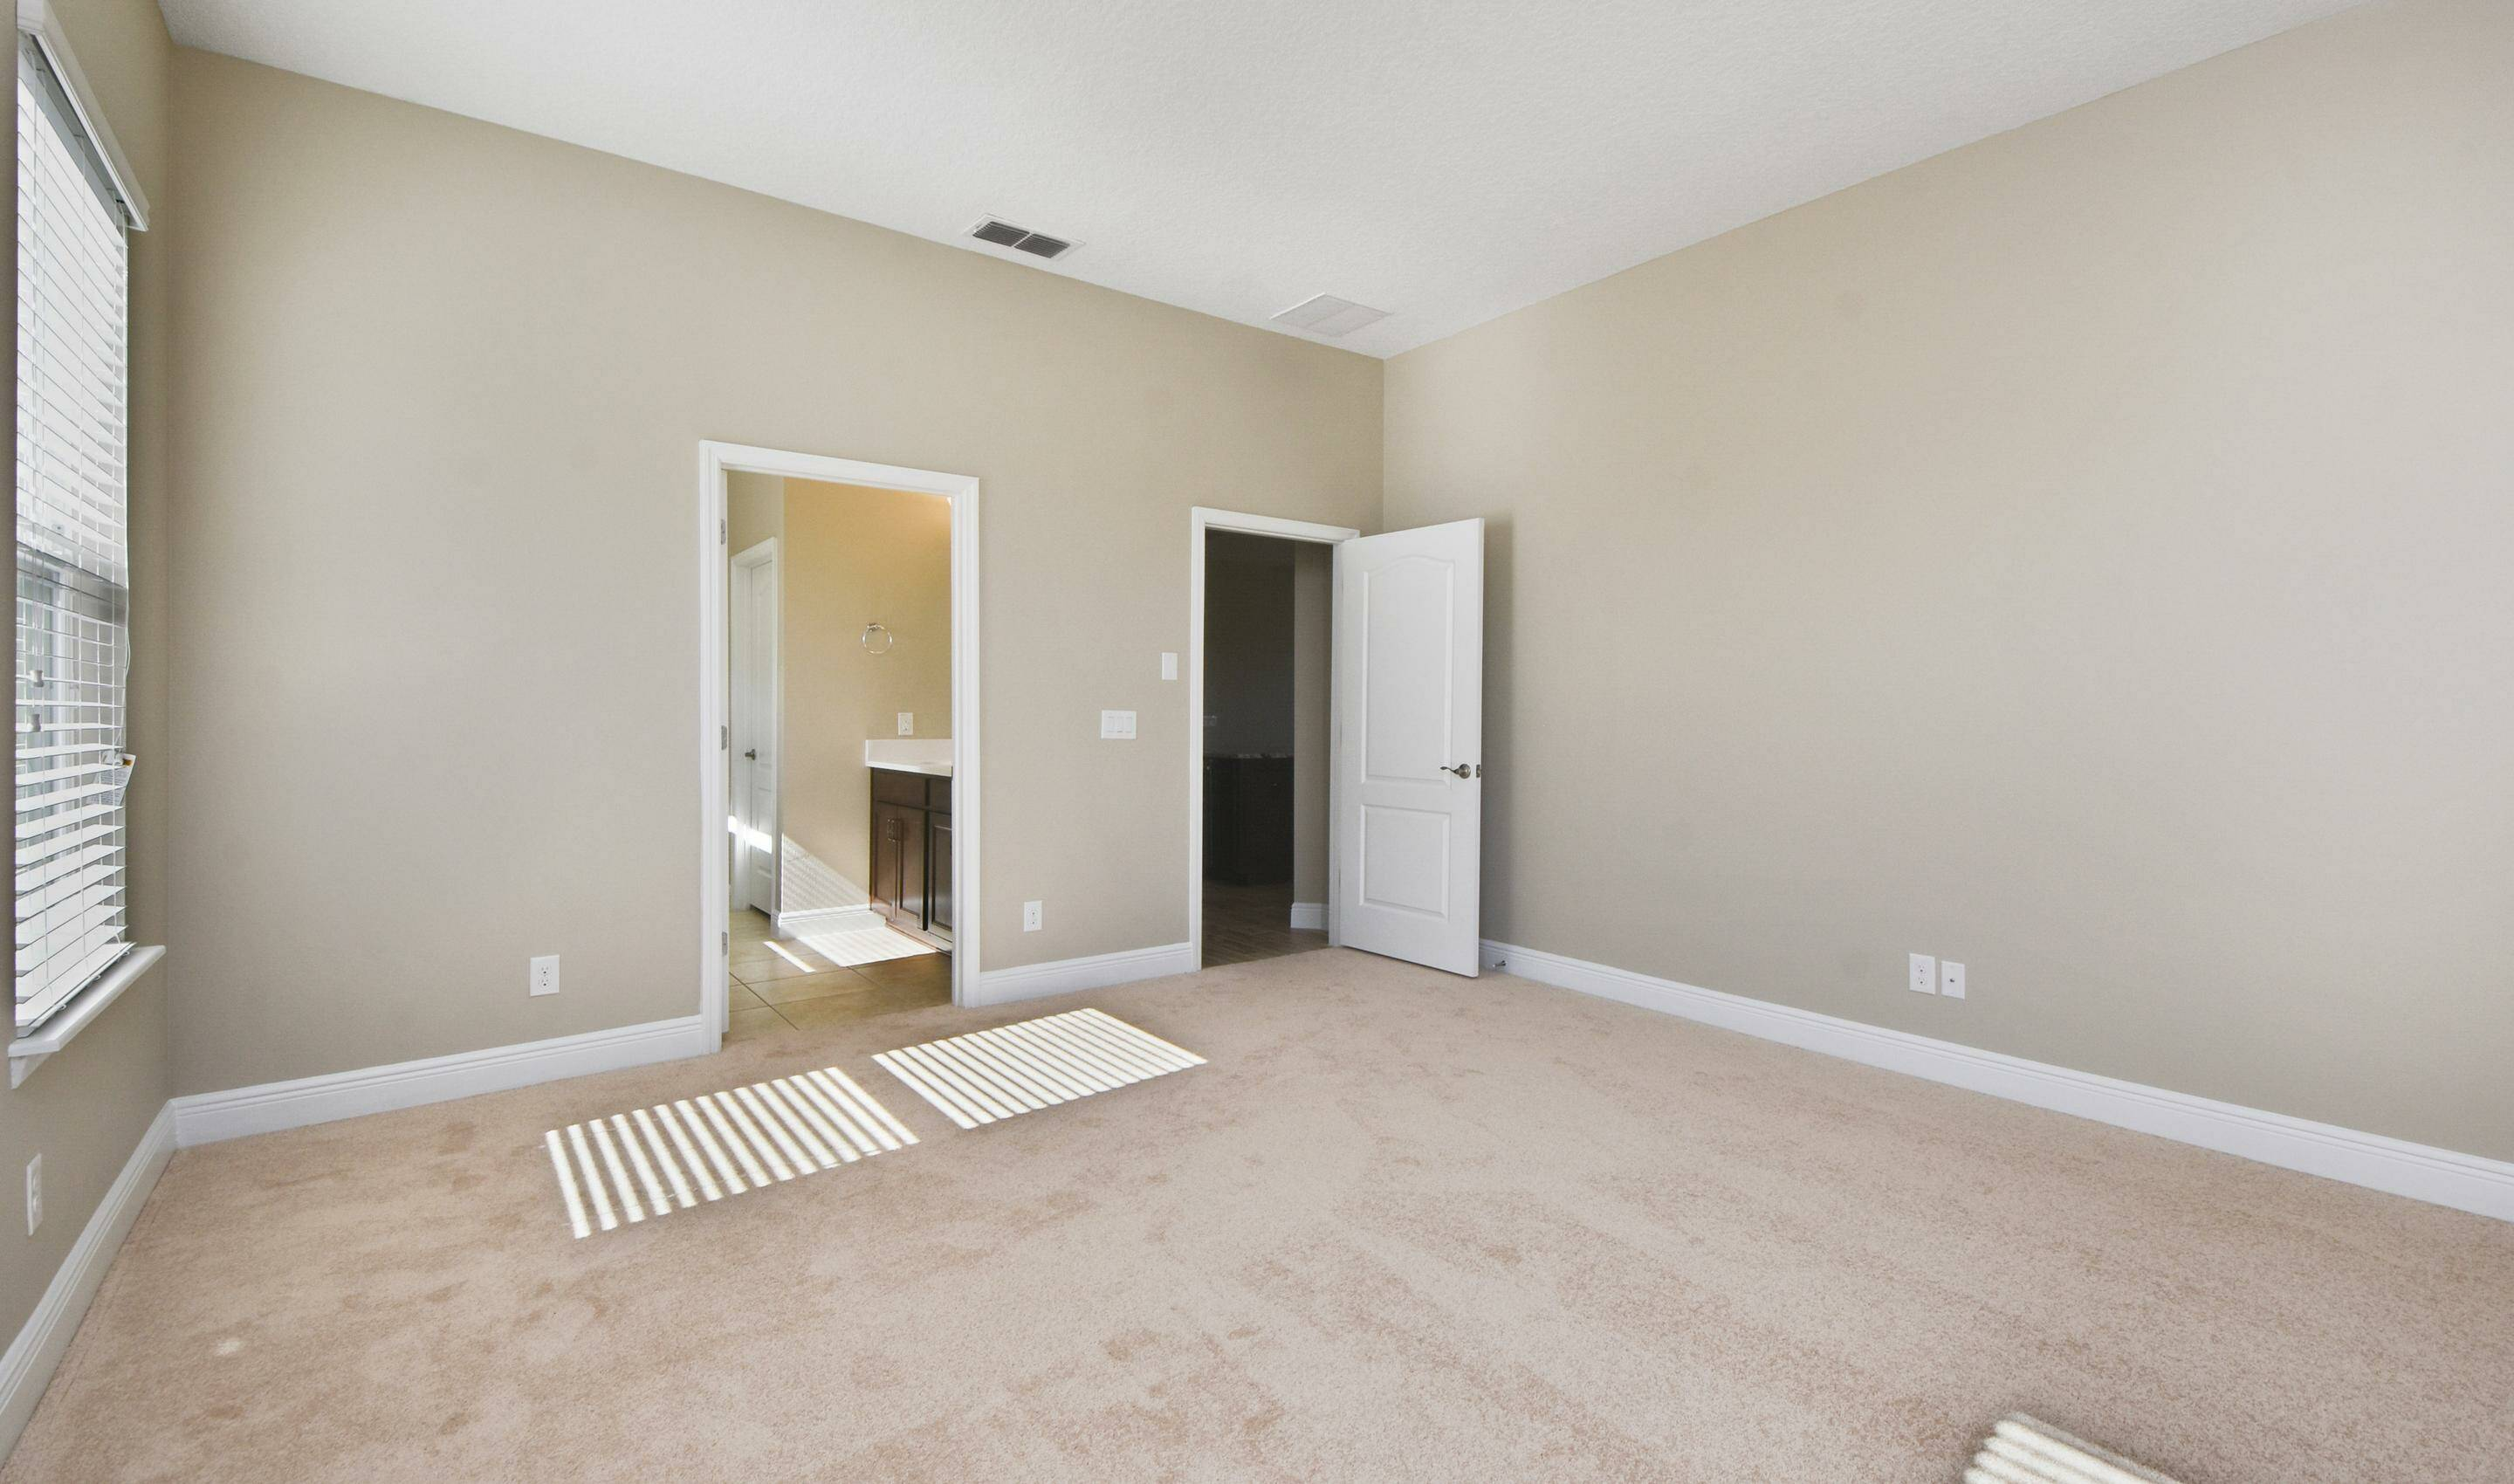 owners suite 2 in the Barbados in Four Seasons at Orlando new homes in Orlando Florida - Copy